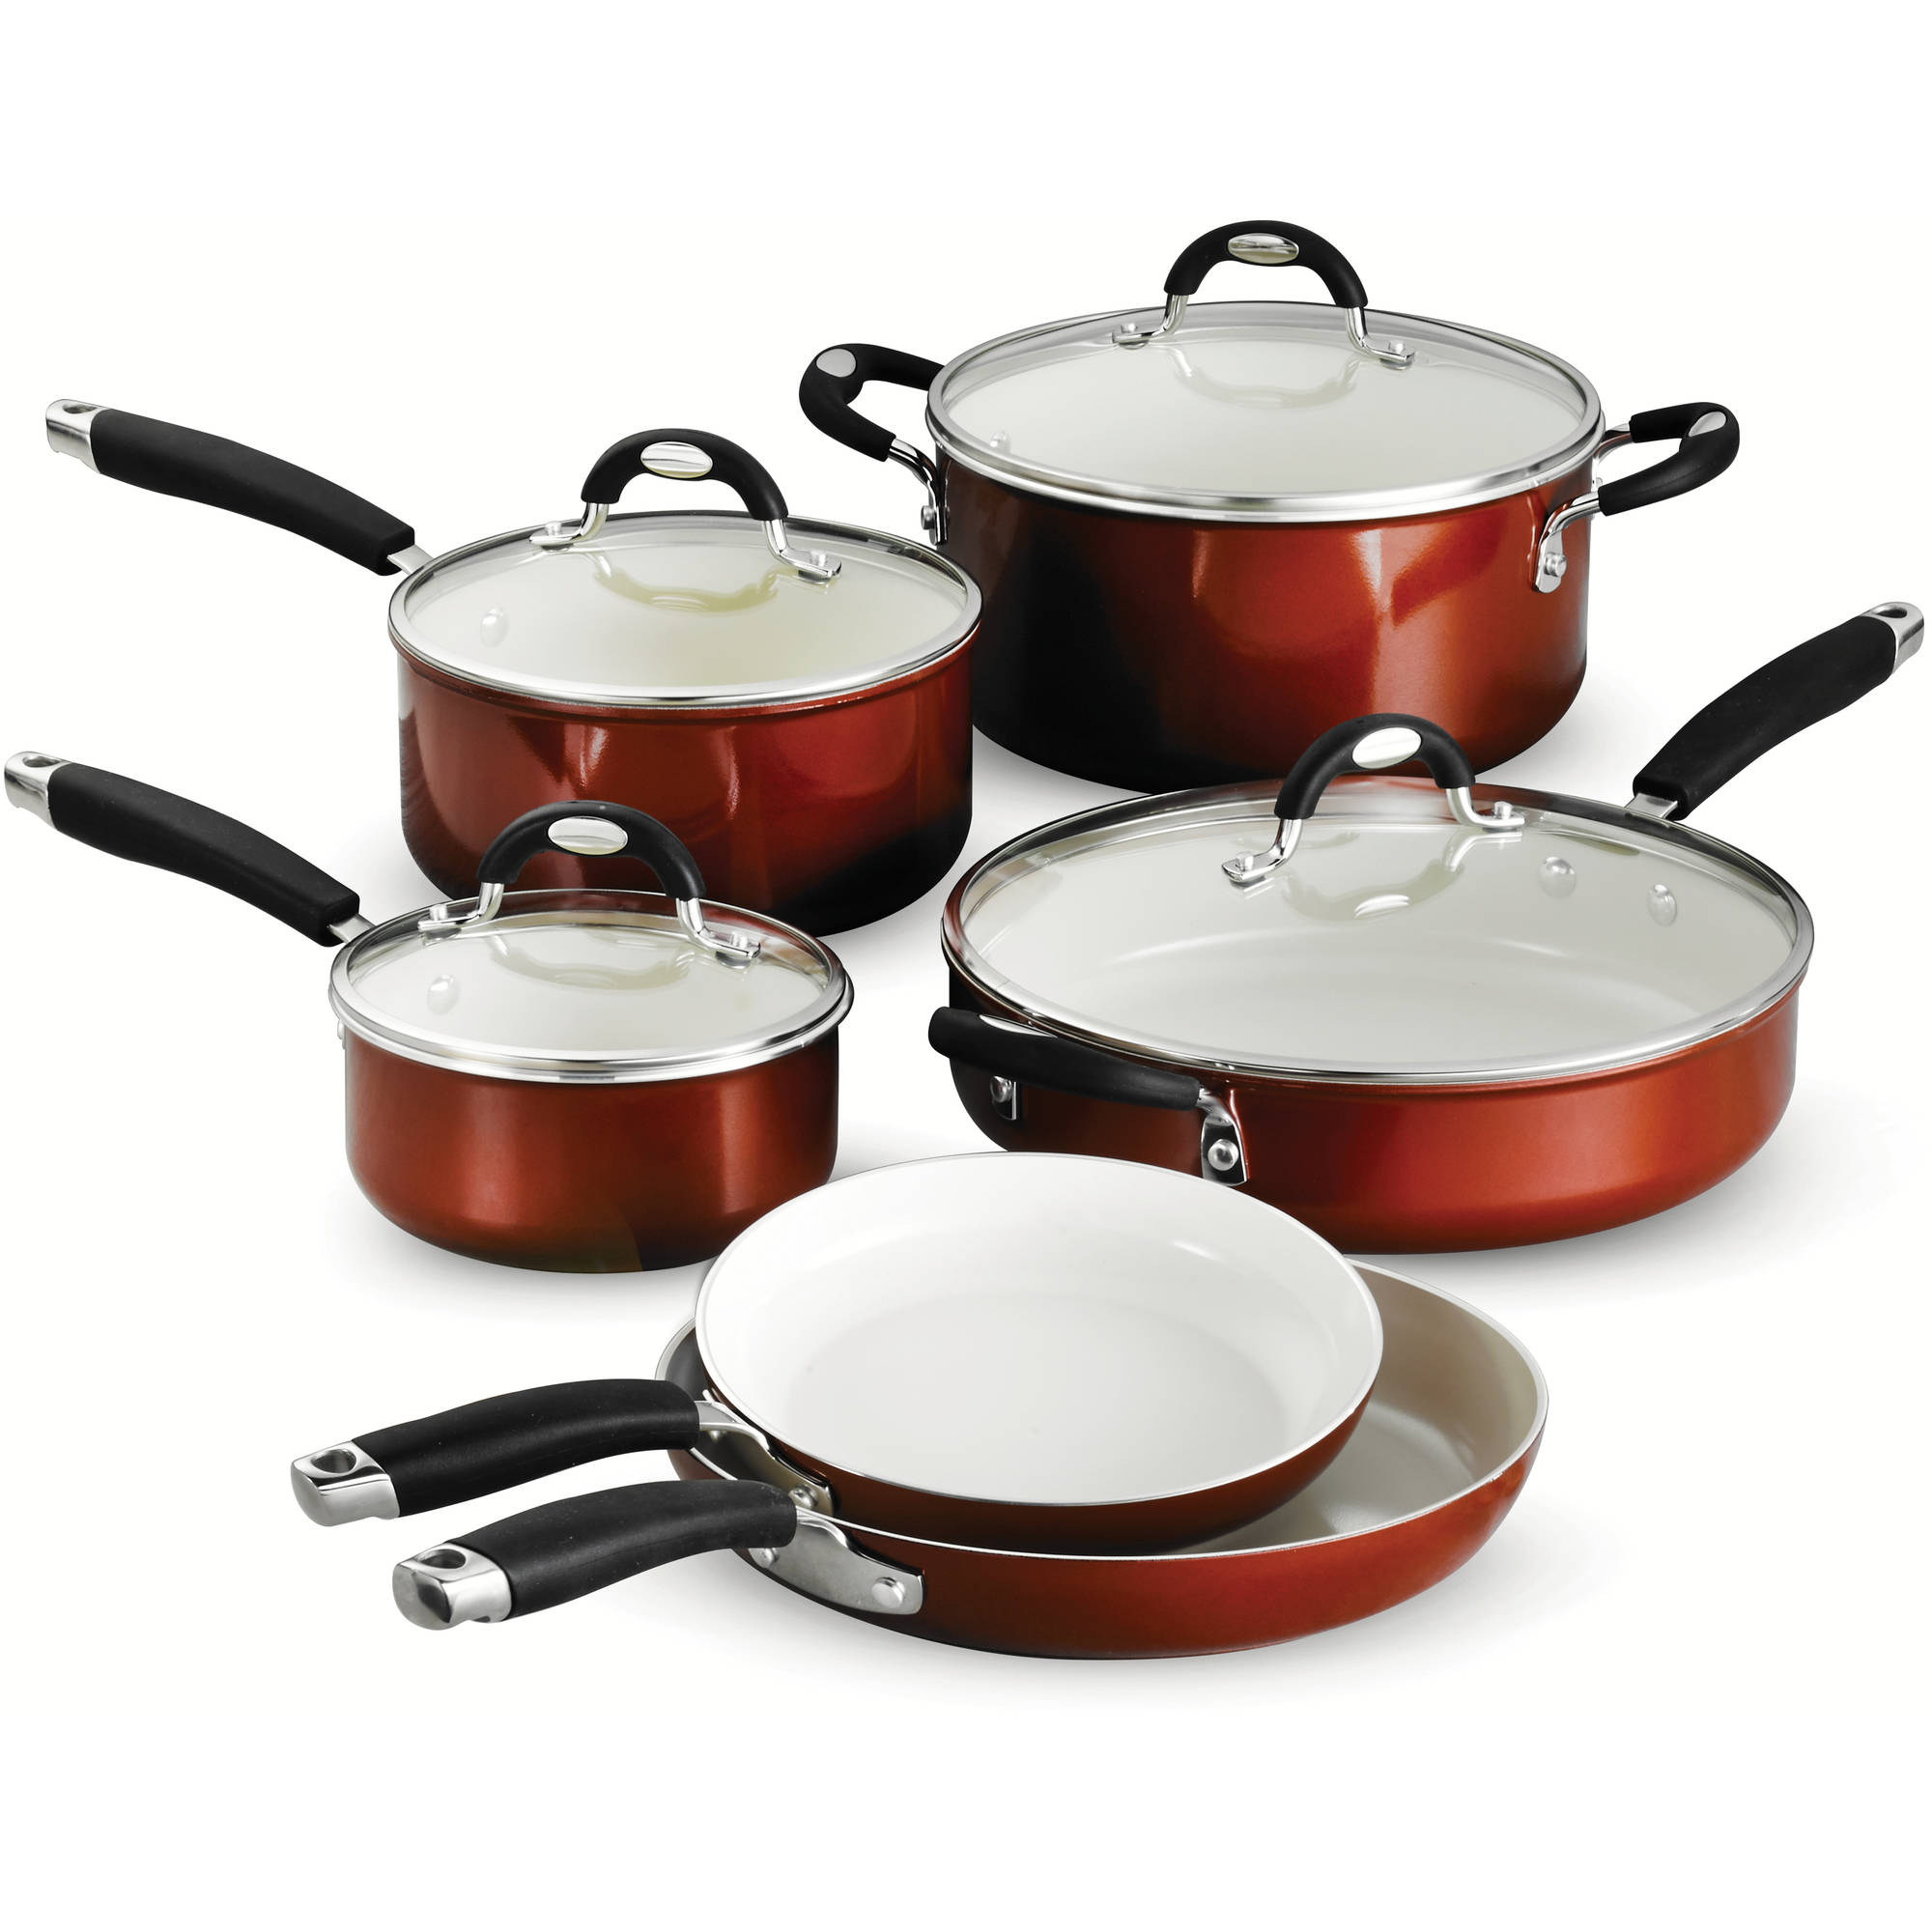 Tramontina Style 10-Piece Cookware Set, Metallic Copper